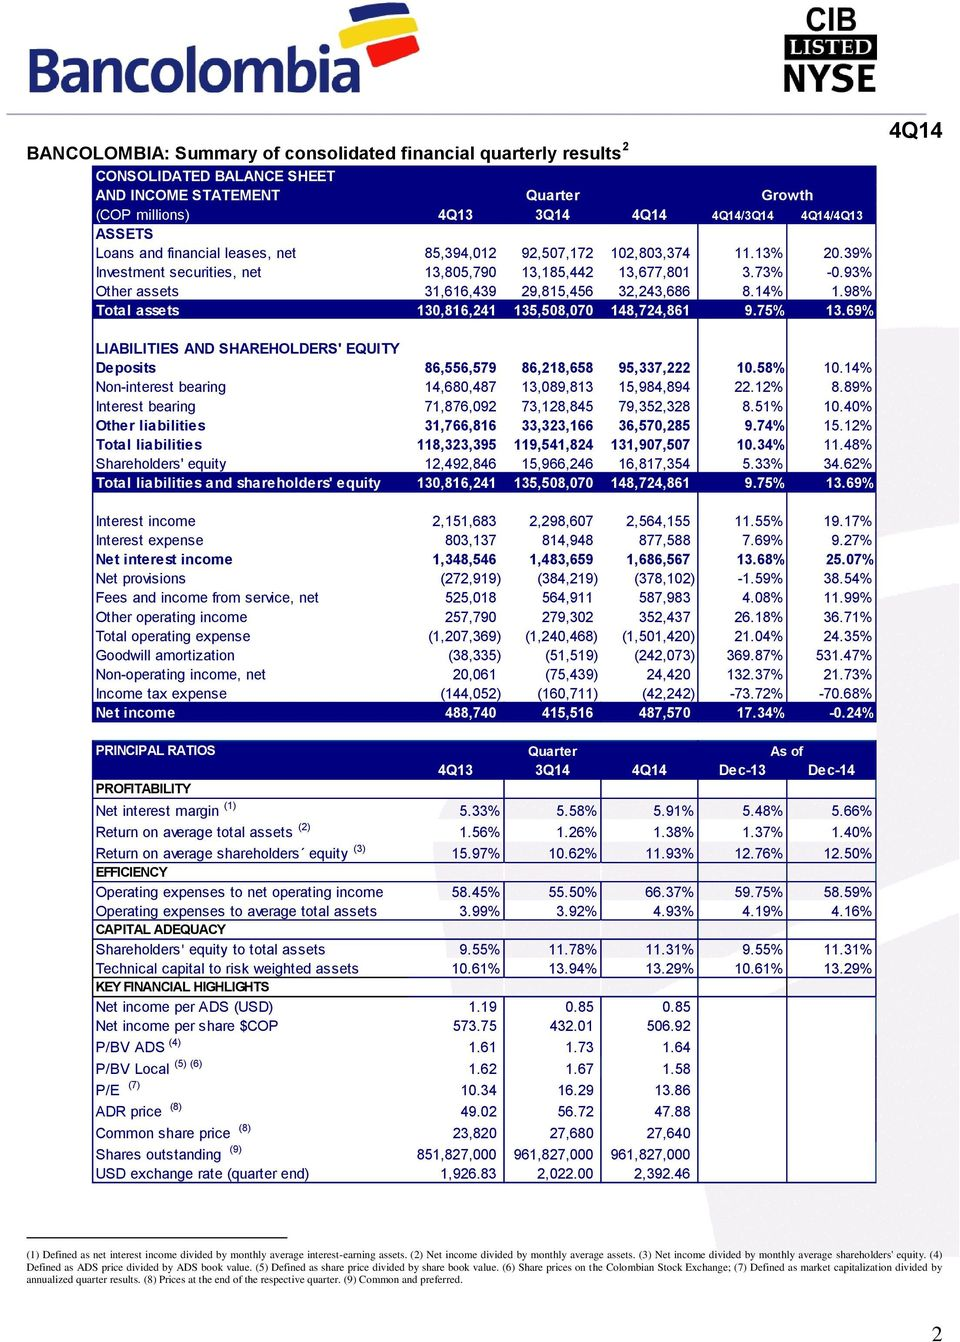 98% Total assets 130,816,241 135,508,070 148,724,861 9.75% 13.69% LIABILITIES AND SHAREHOLDERS' EQUITY Deposits 86,556,579 86,218,658 95,337,222 10.58% 10.